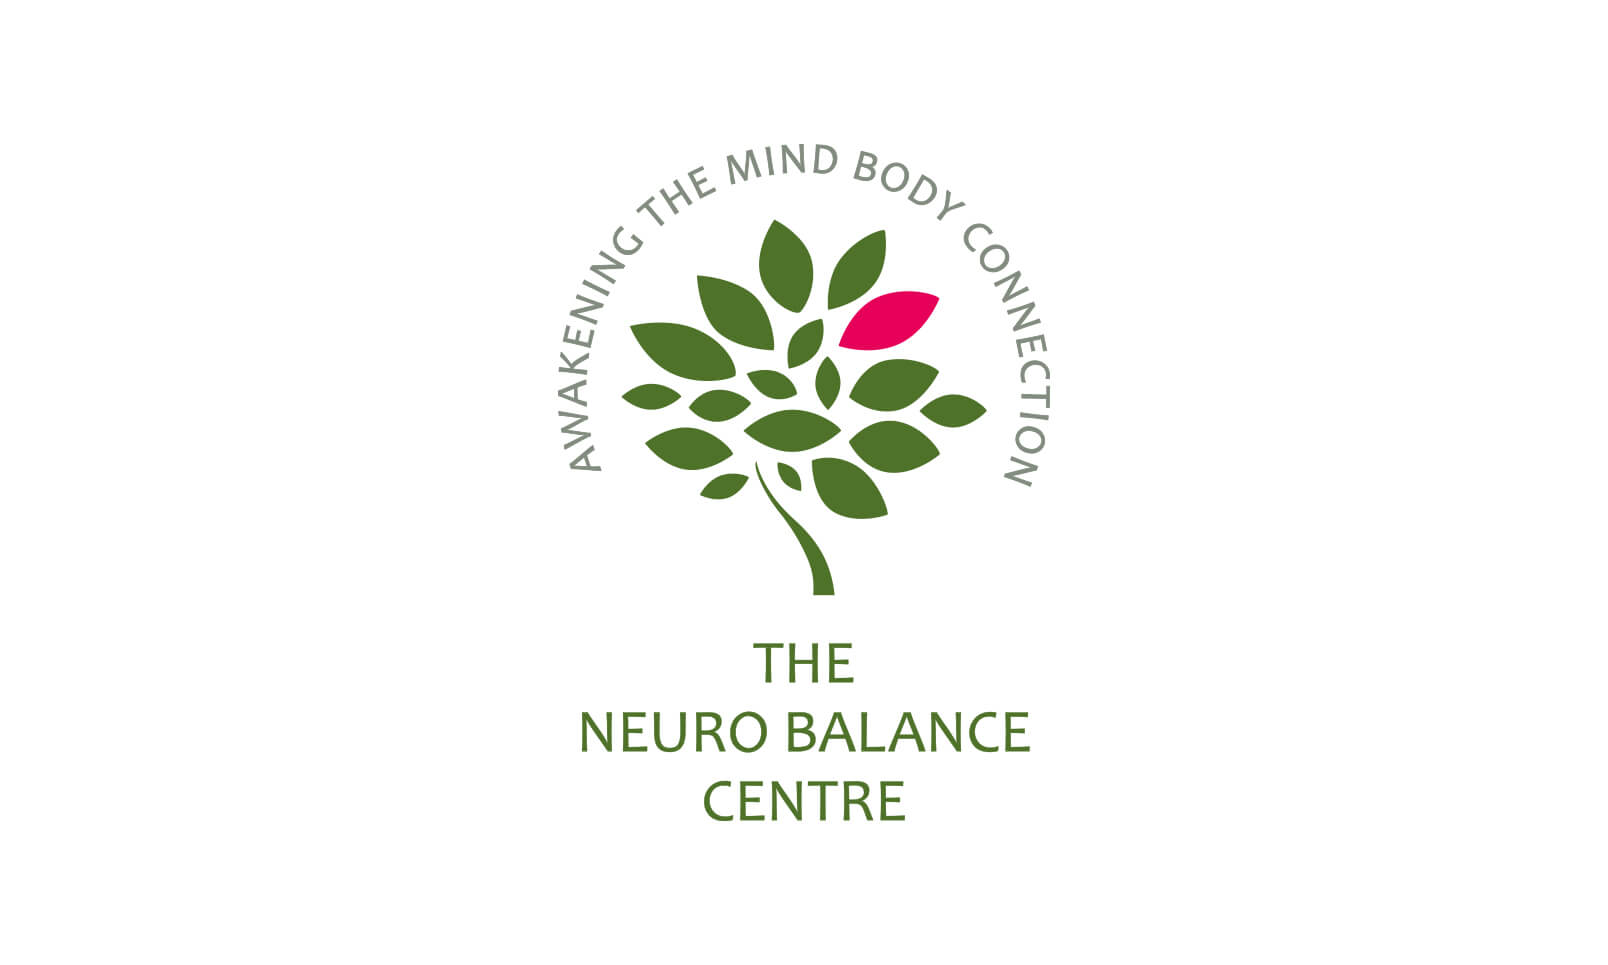 The Neuro Balance Centre